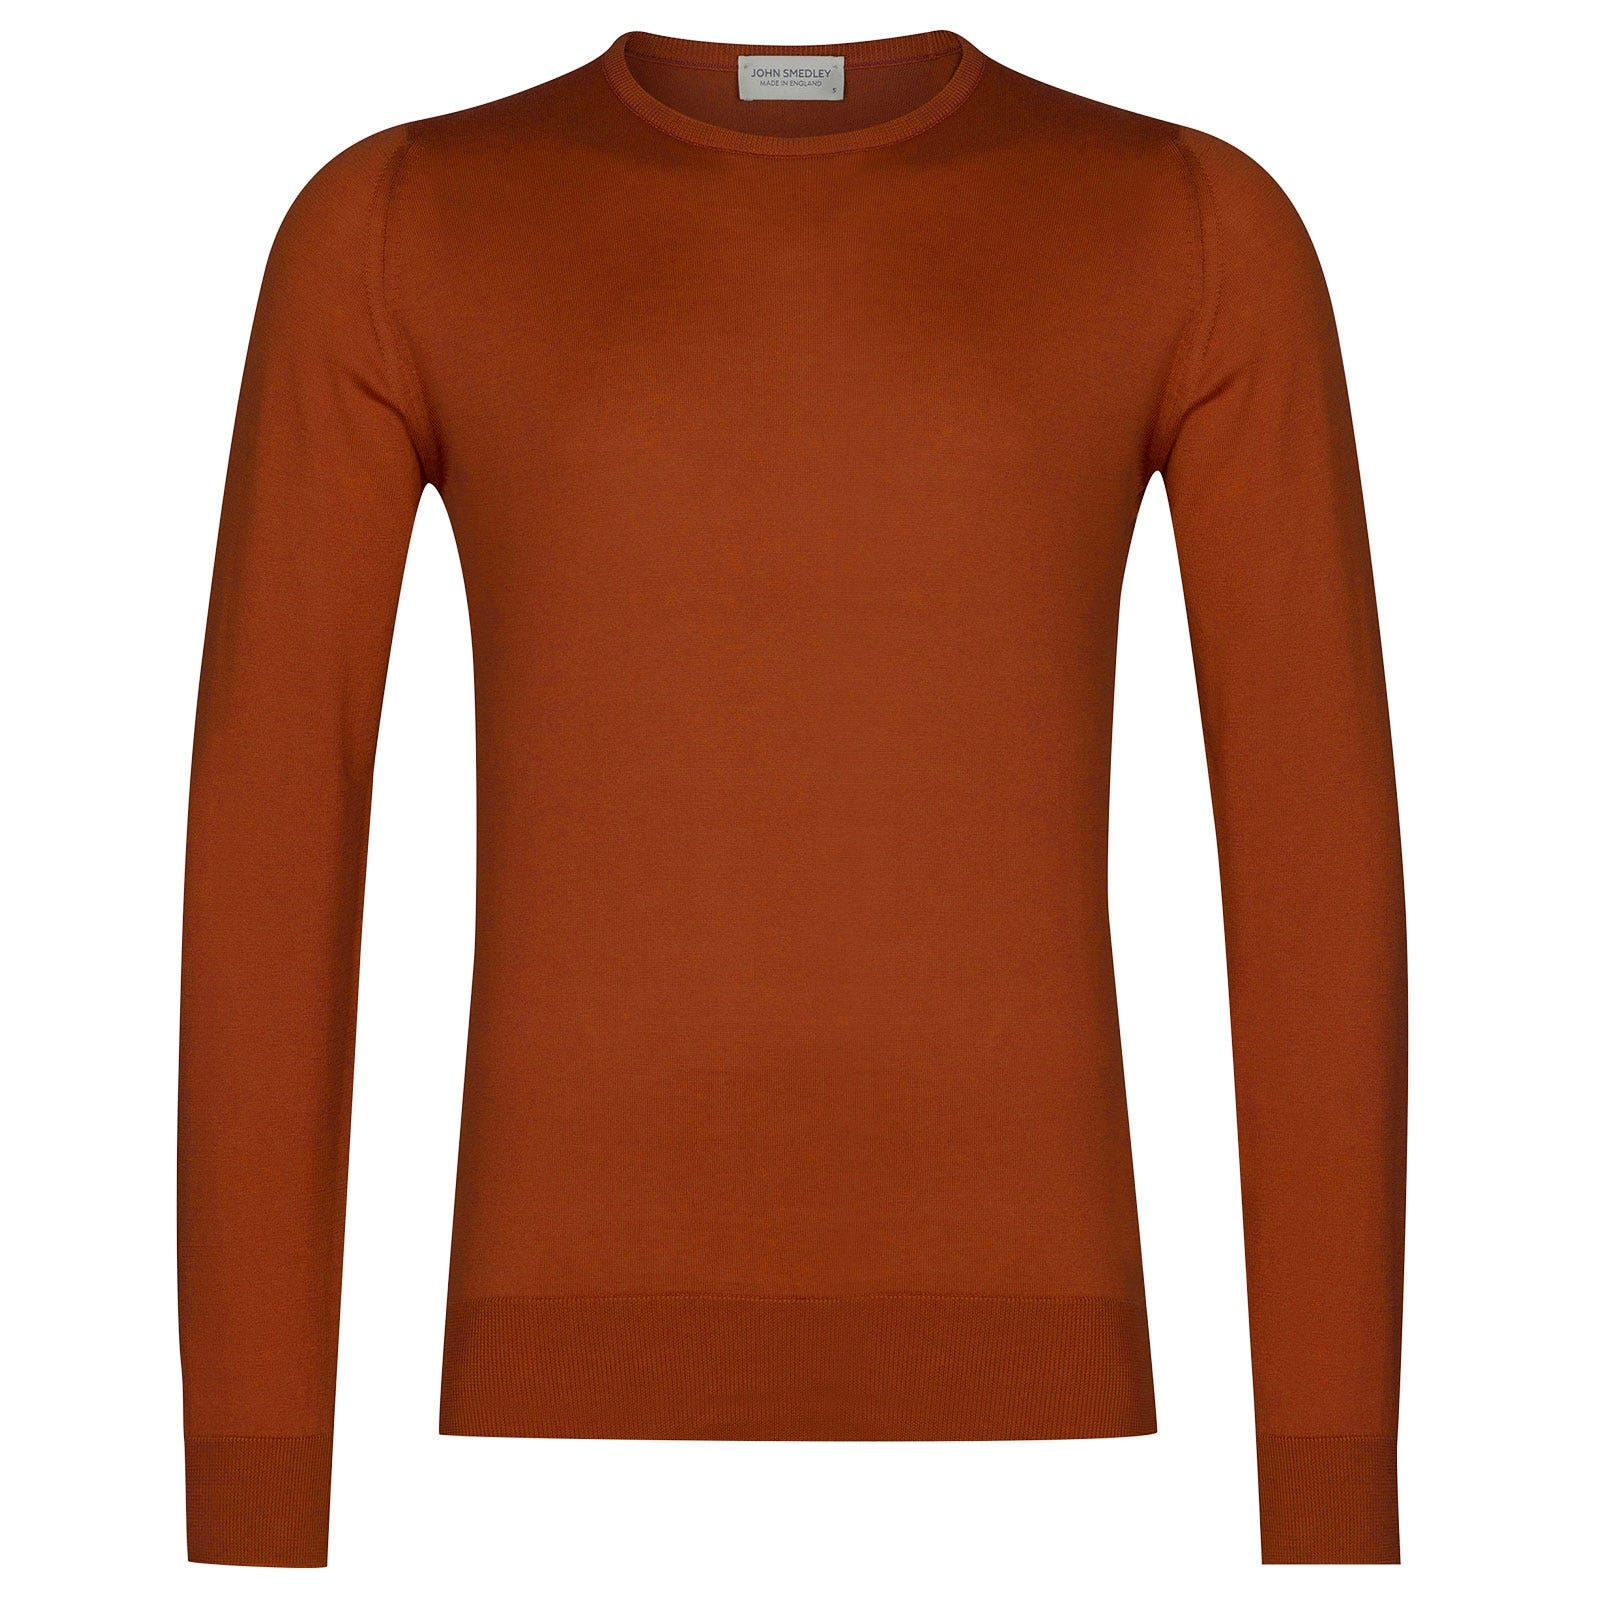 John Smedley hatfield Sea Island Cotton Pullover in Flare Orange-M